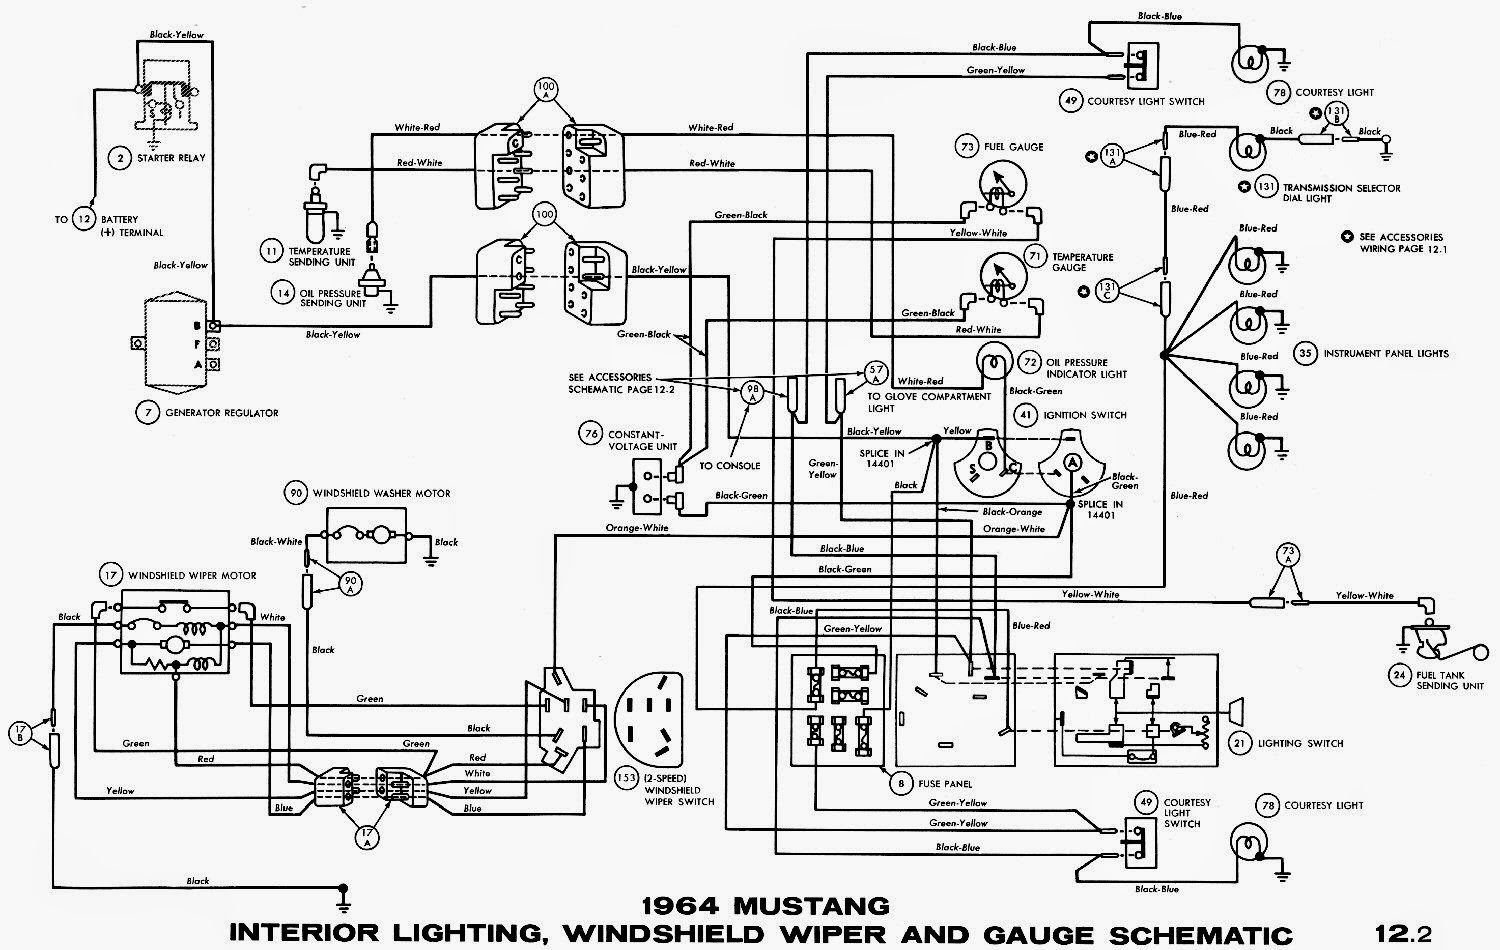 Honda Accord Fuse Box Diagram 374841 further Lights moreover Cat C15 Acert Ecm Wiring Diagram in addition 9307CH04 LOCATIONS besides Opc mr2oc. on jaguar electrical diagrams